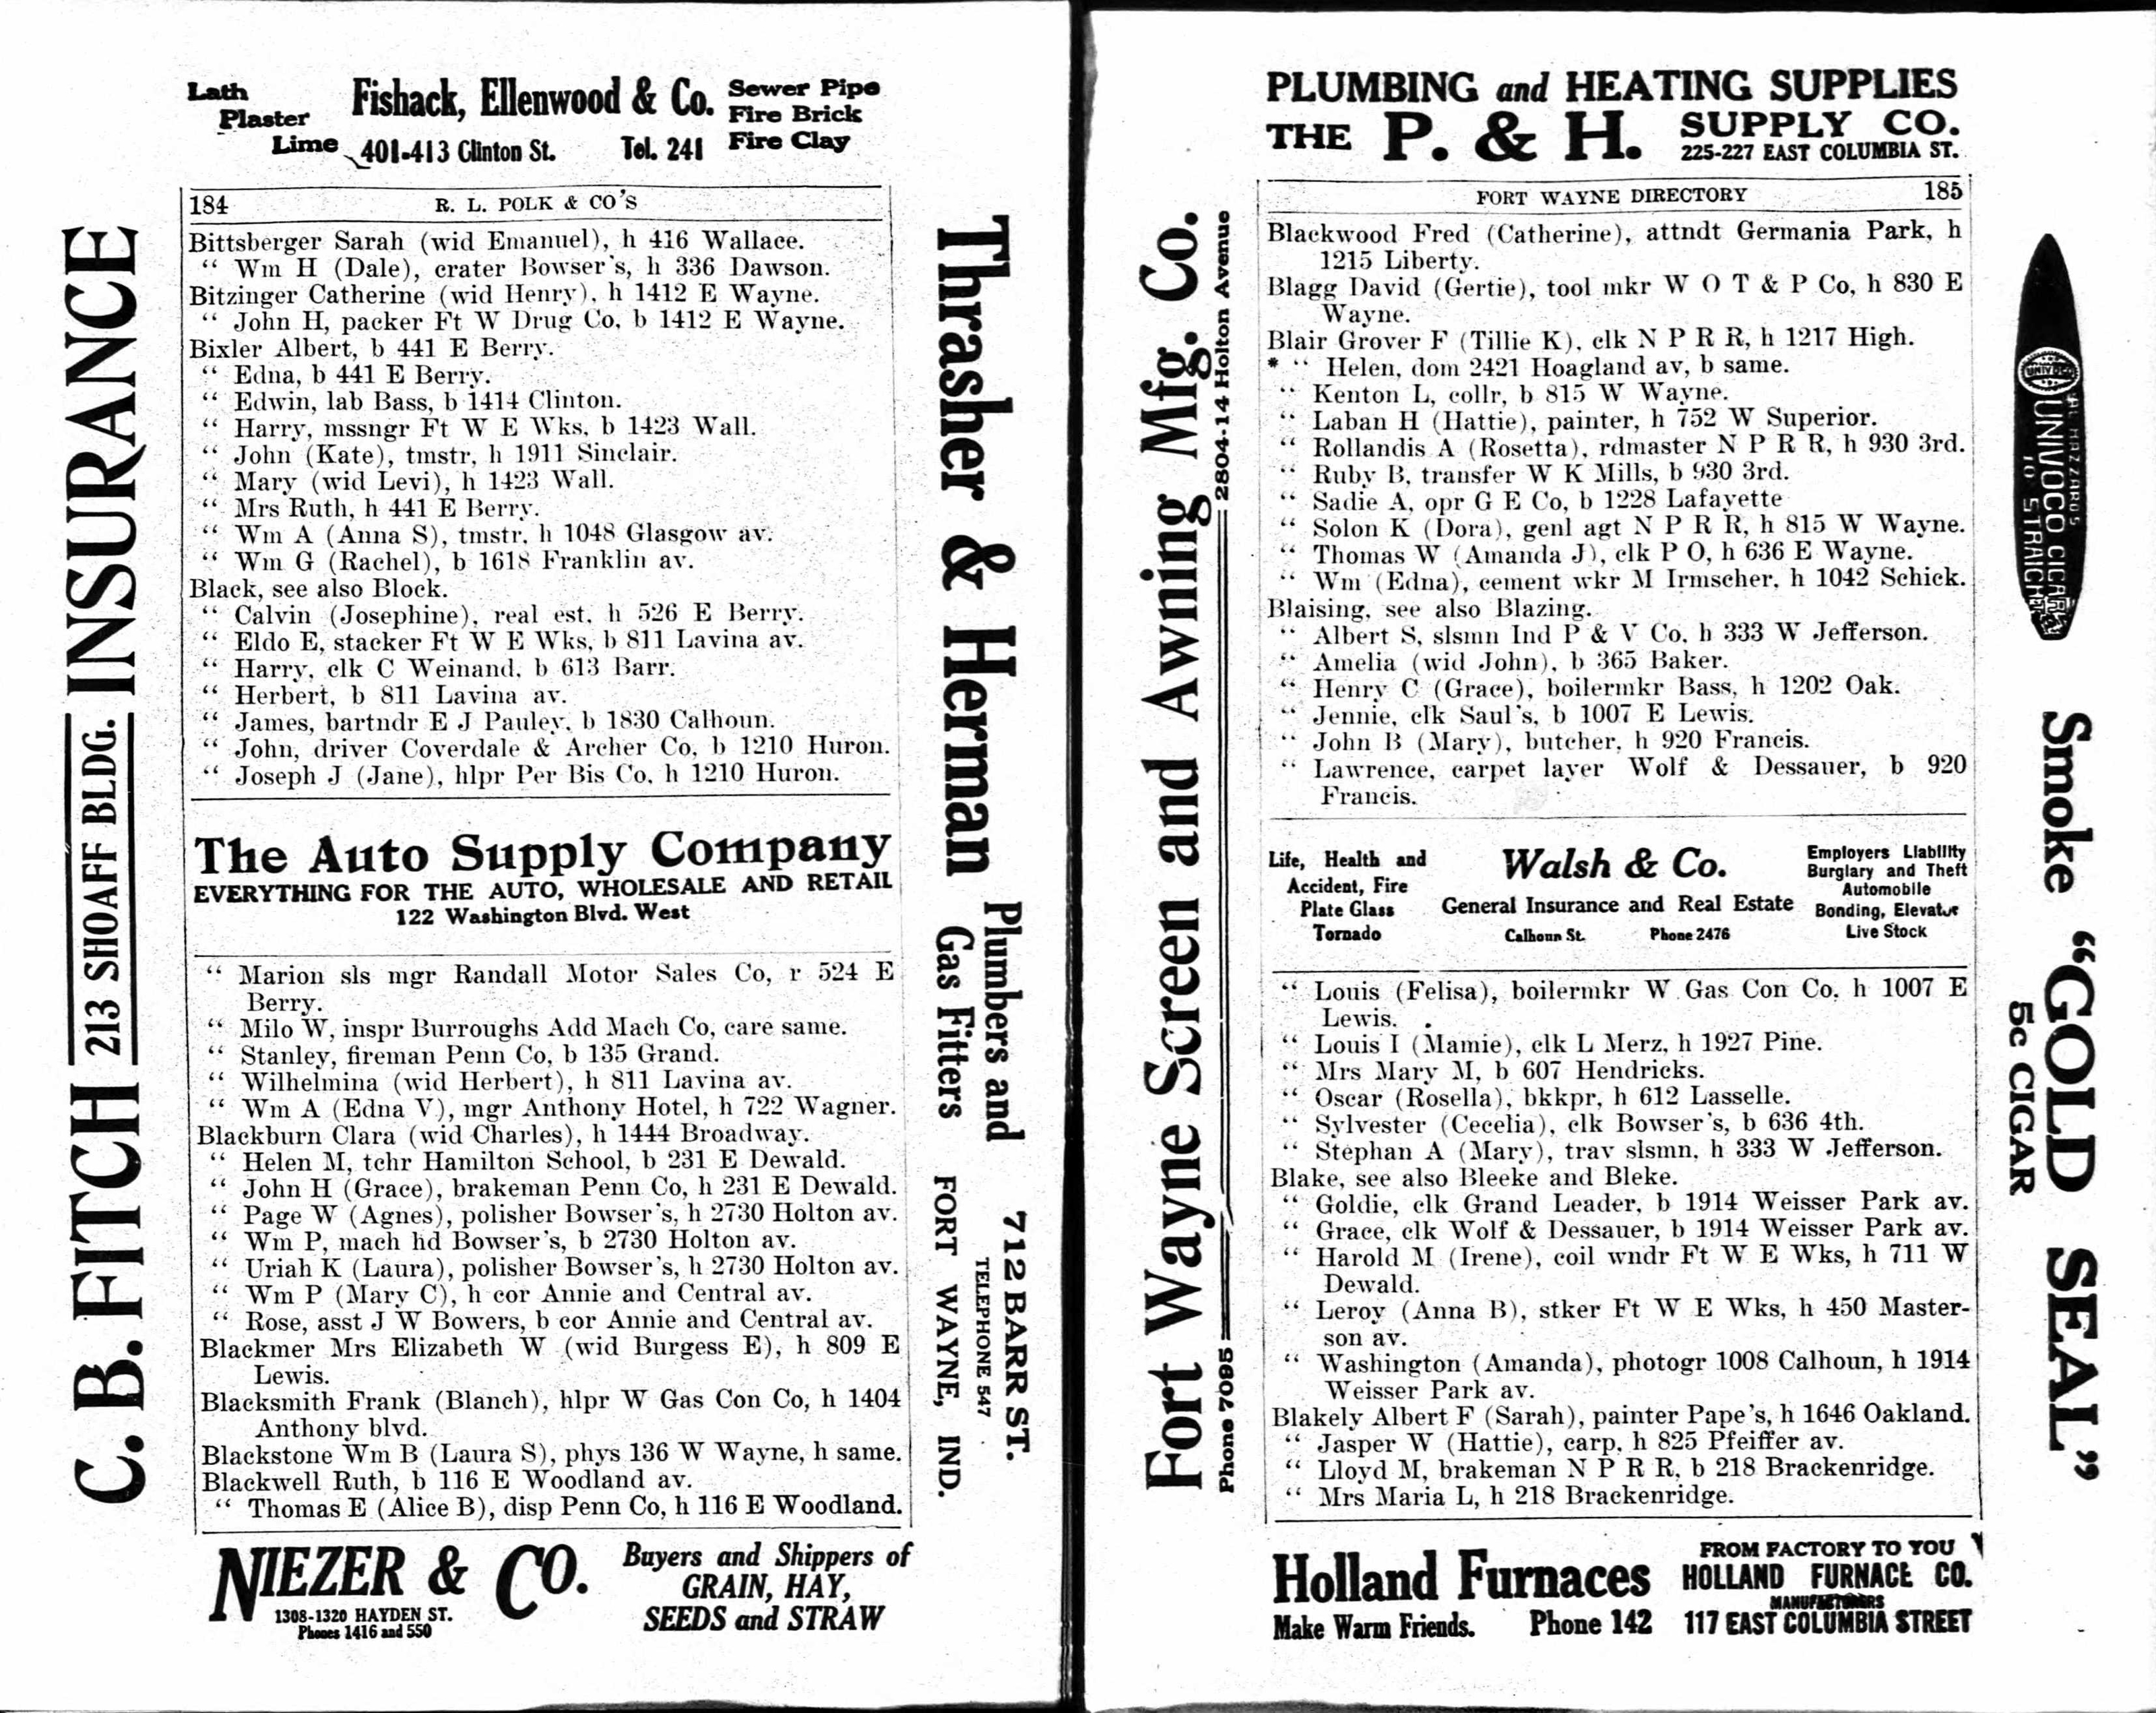 Rachel Sargent - William Bixler - 1914 directory